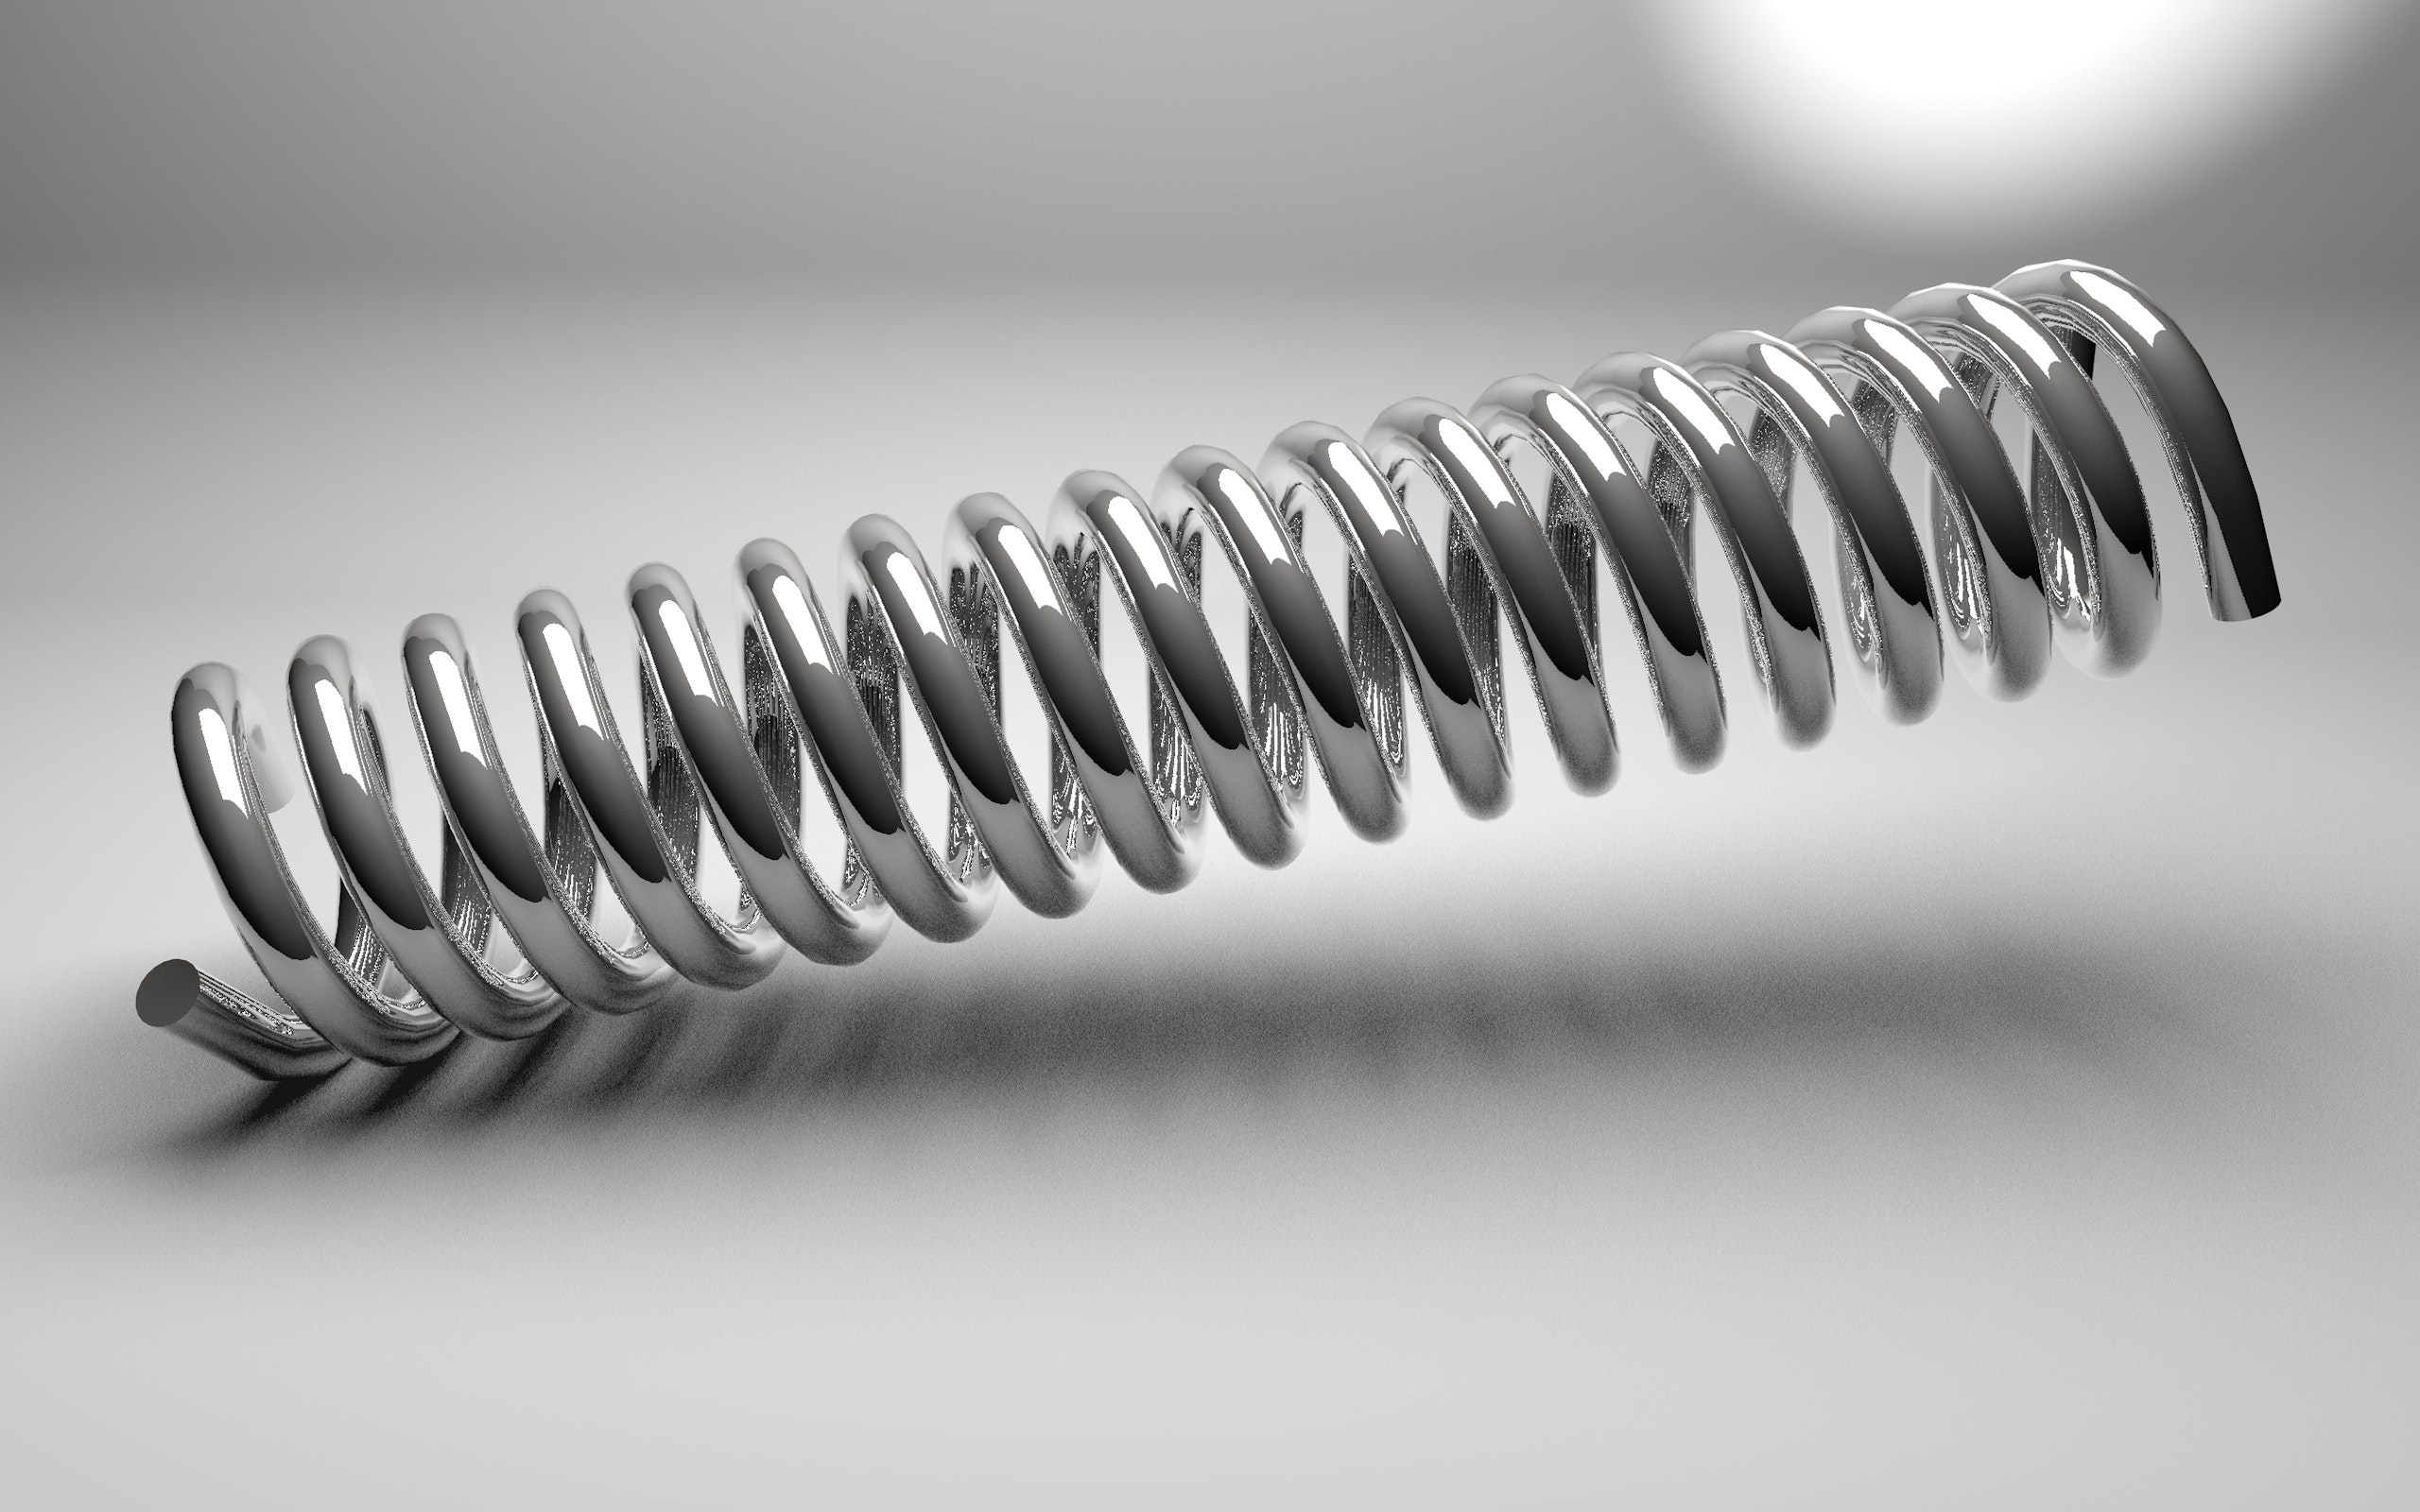 Close-up of Metal, Abstract, Metal, Tool, Technology, HQ Photo